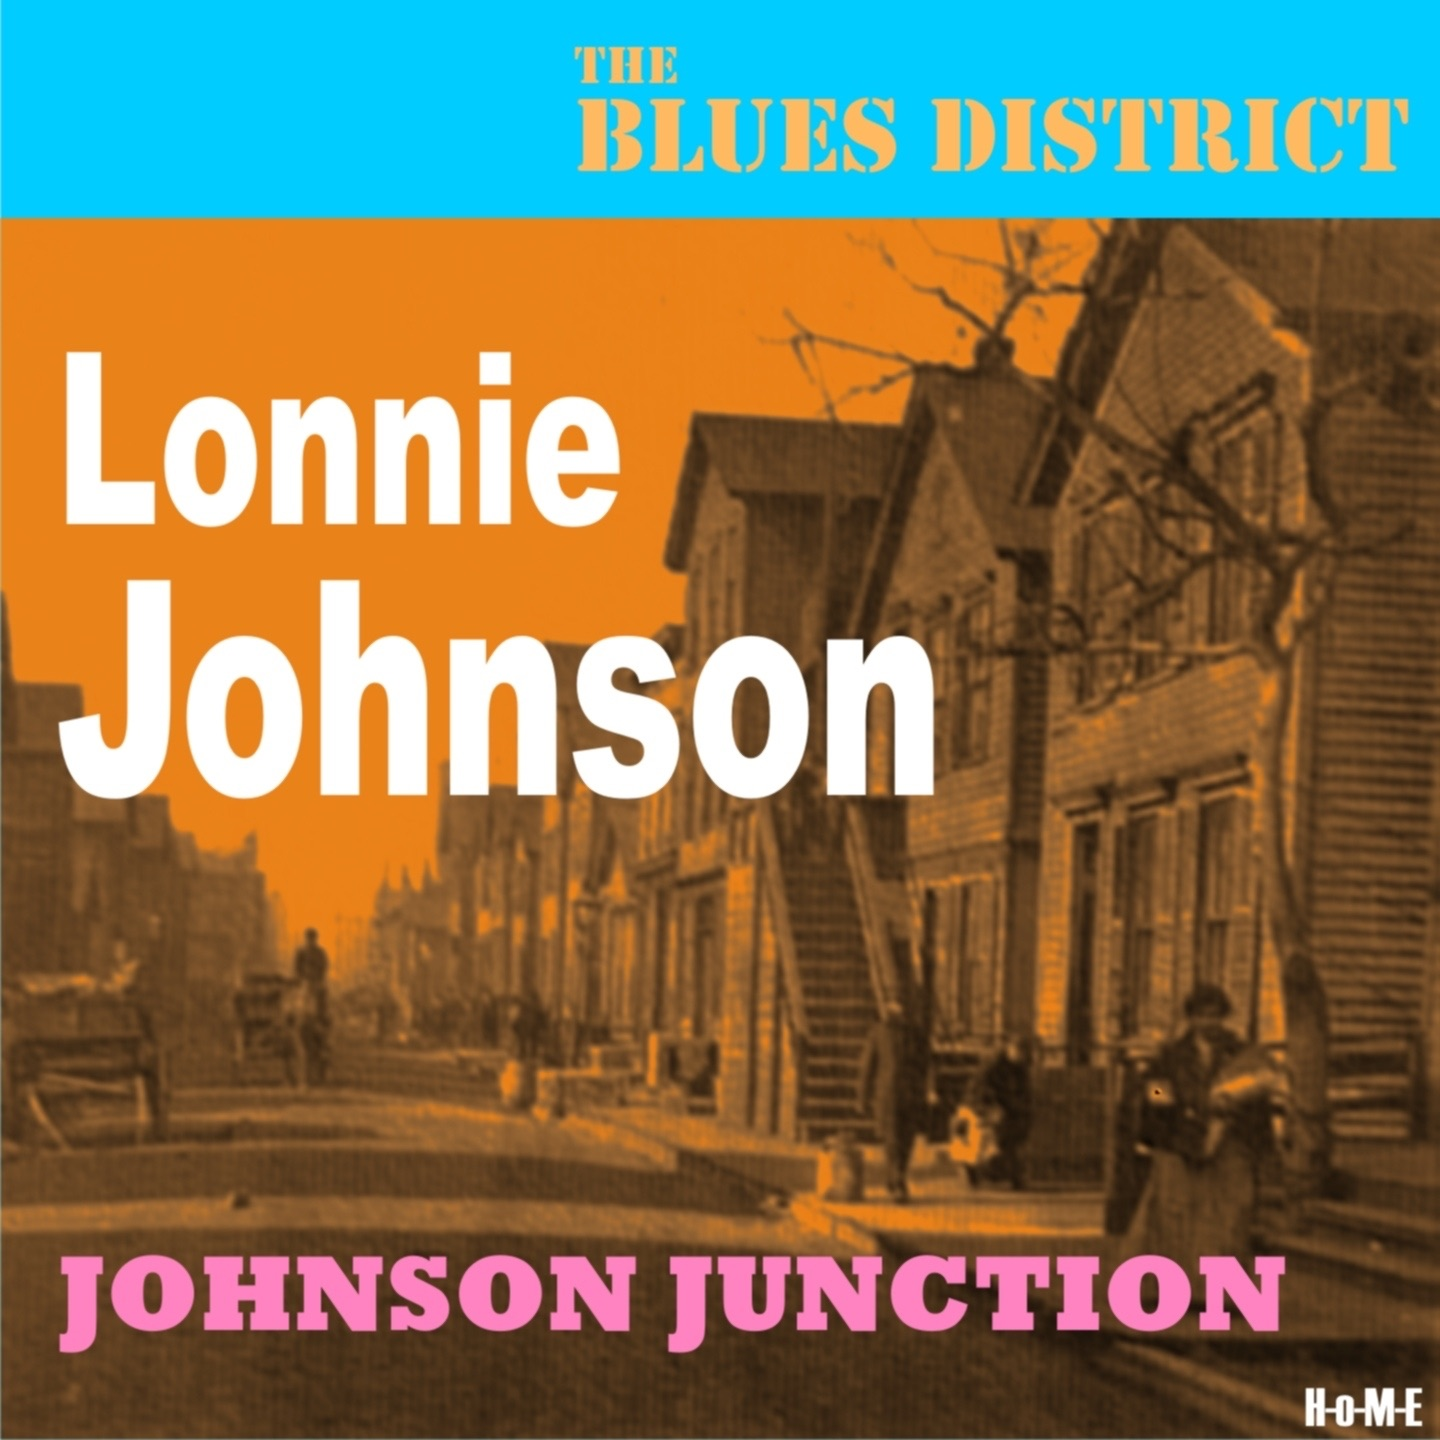 Johnson Junction (The Blues District)